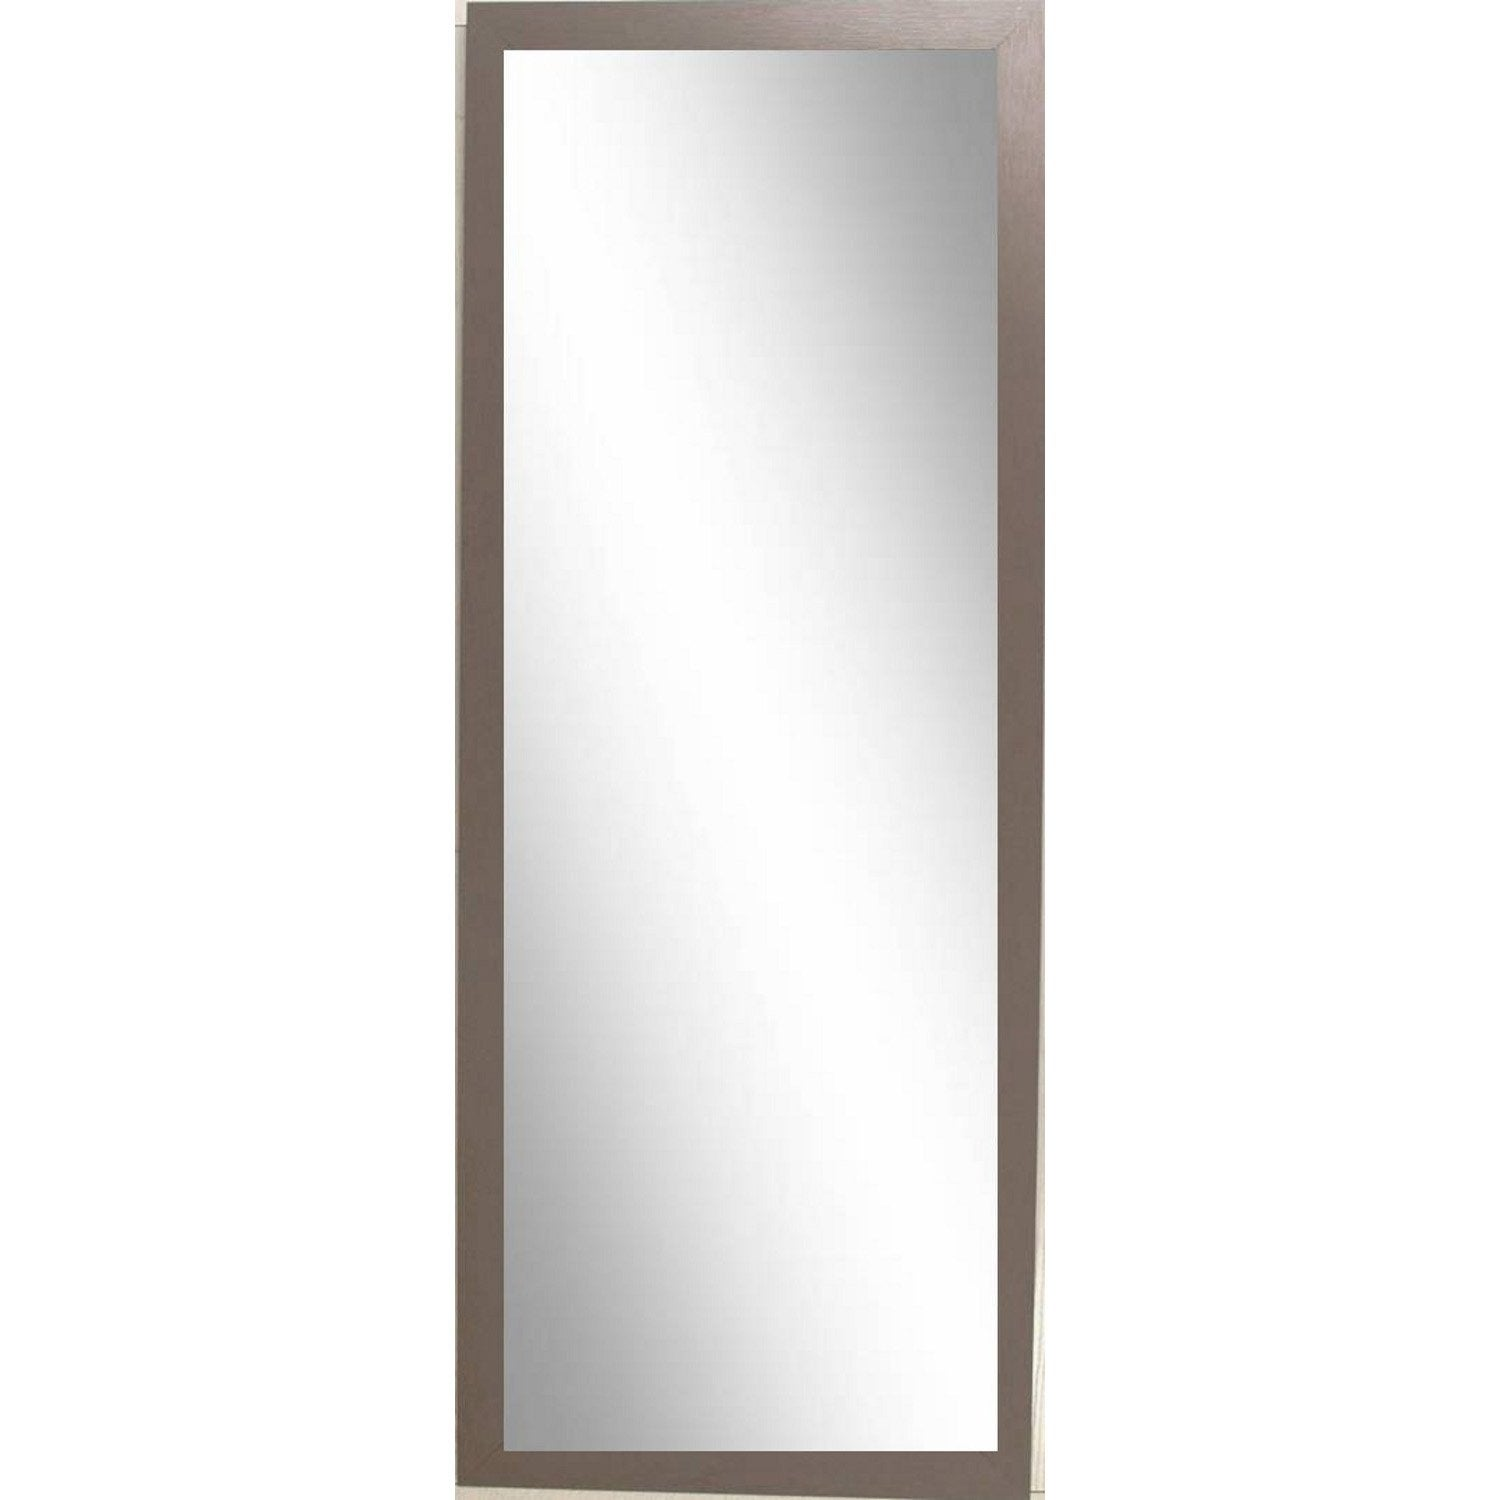 miroir riviera 2 inspire brun taupe n 3 30x120 cm leroy merlin. Black Bedroom Furniture Sets. Home Design Ideas